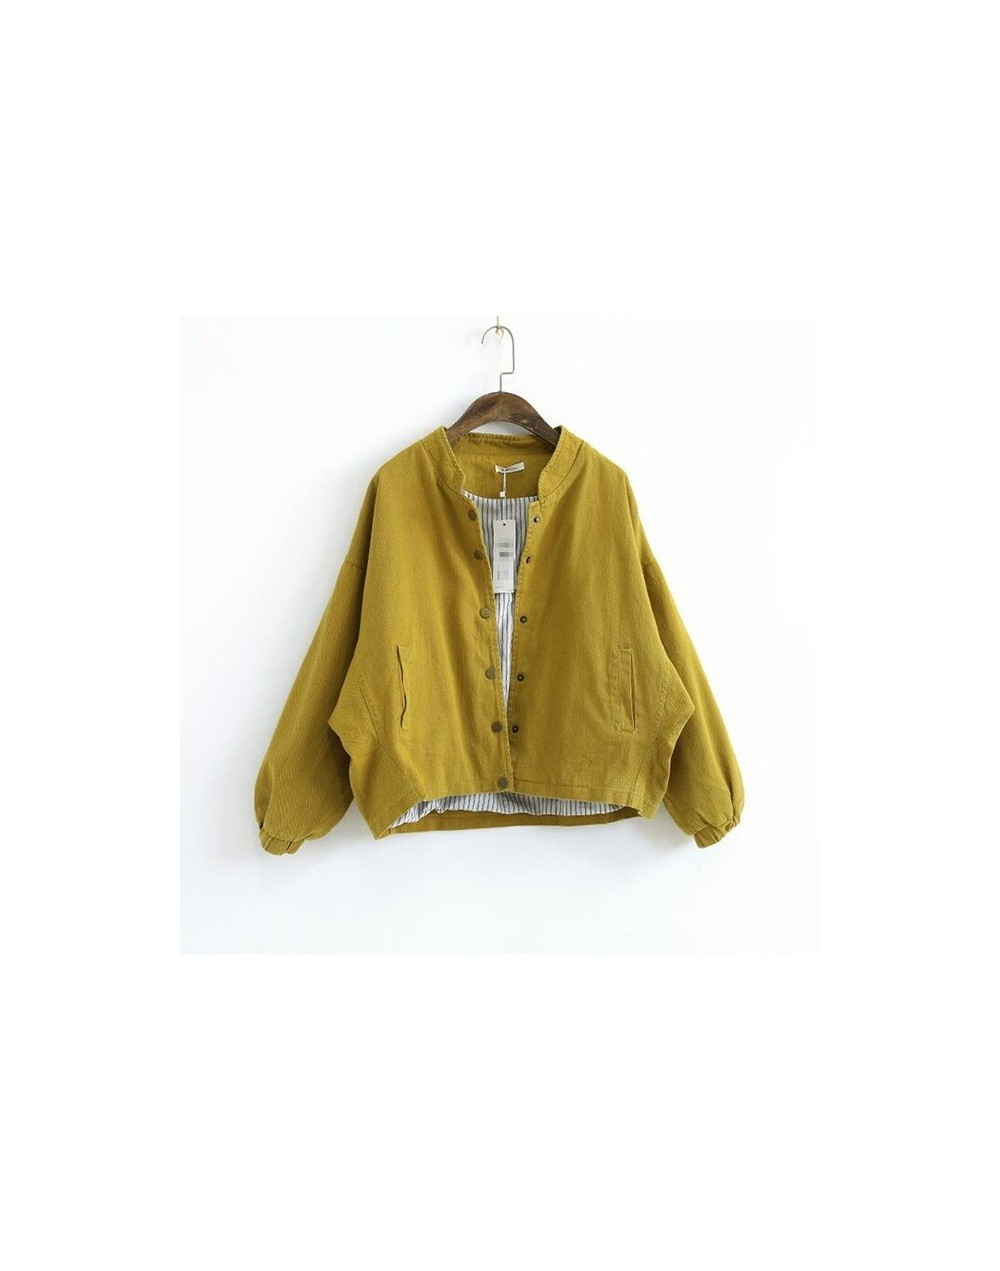 Women Jacket 2018 Autumn Winter Solid Color Long Sleeve Cotton Loose Single Breasted Casual Coat Clothing Women Tops - Yello...